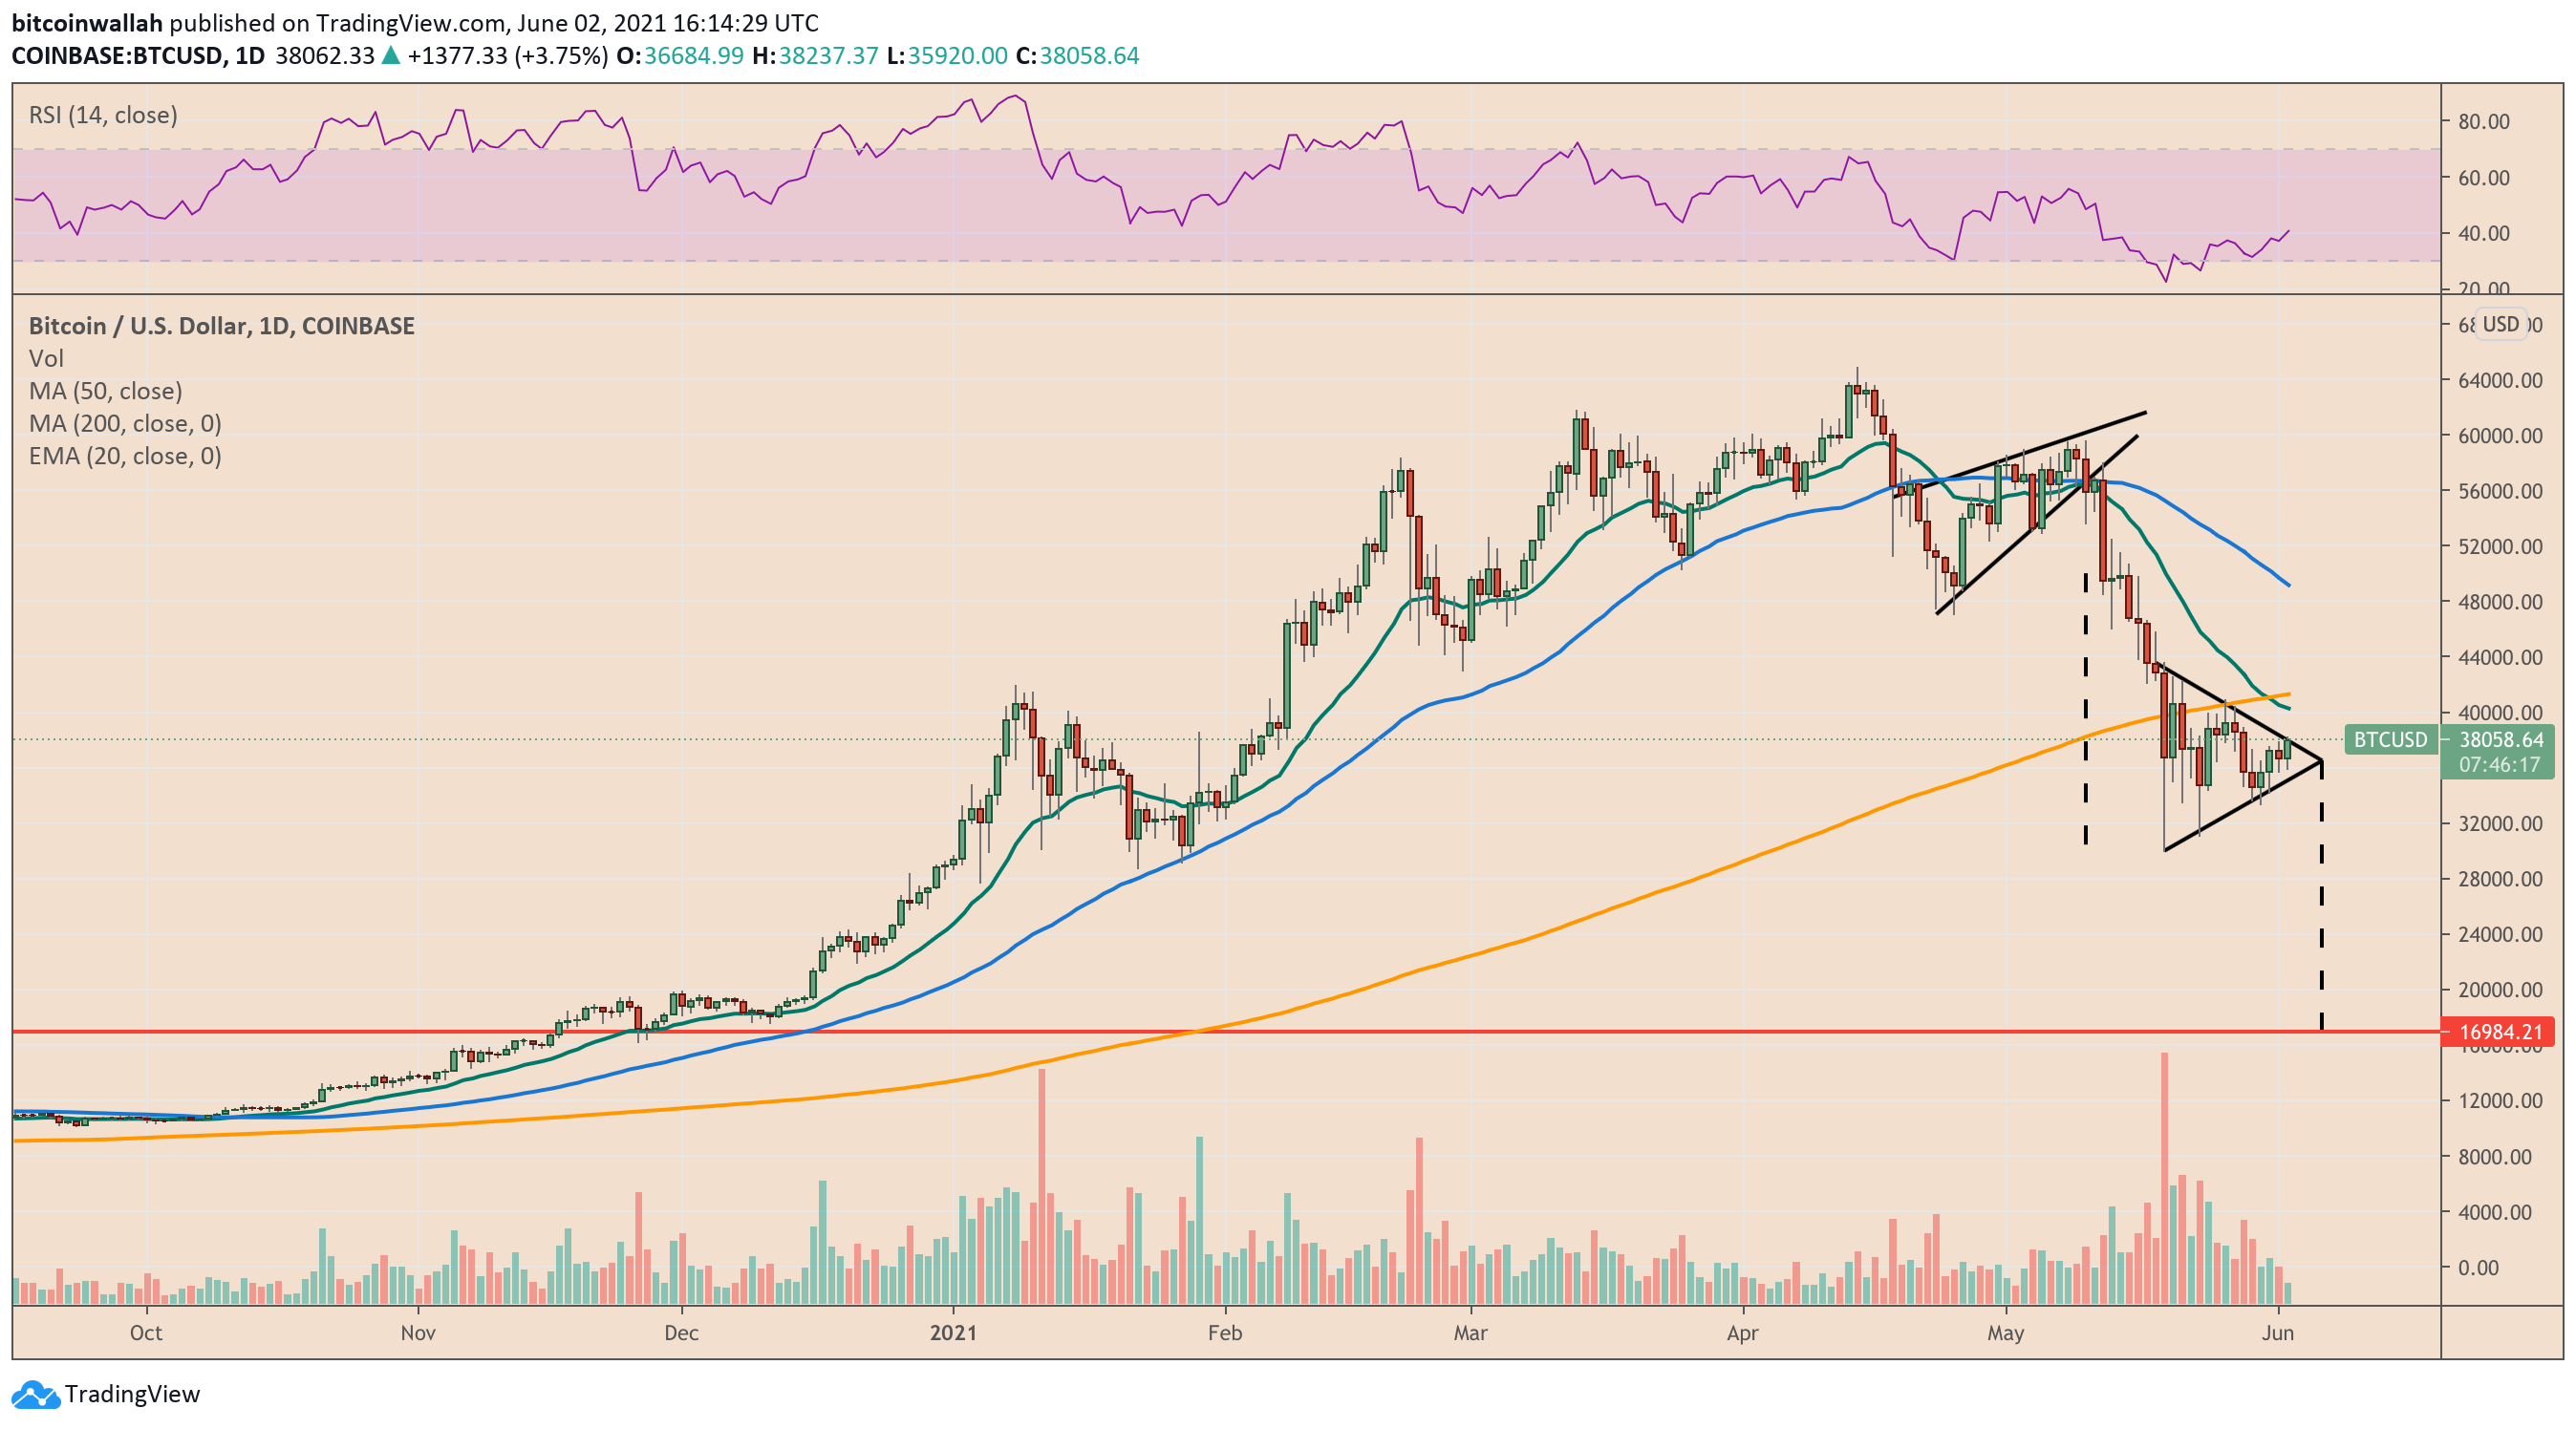 Classic technical indicator foresees another massive Bitcoin price drop with K target